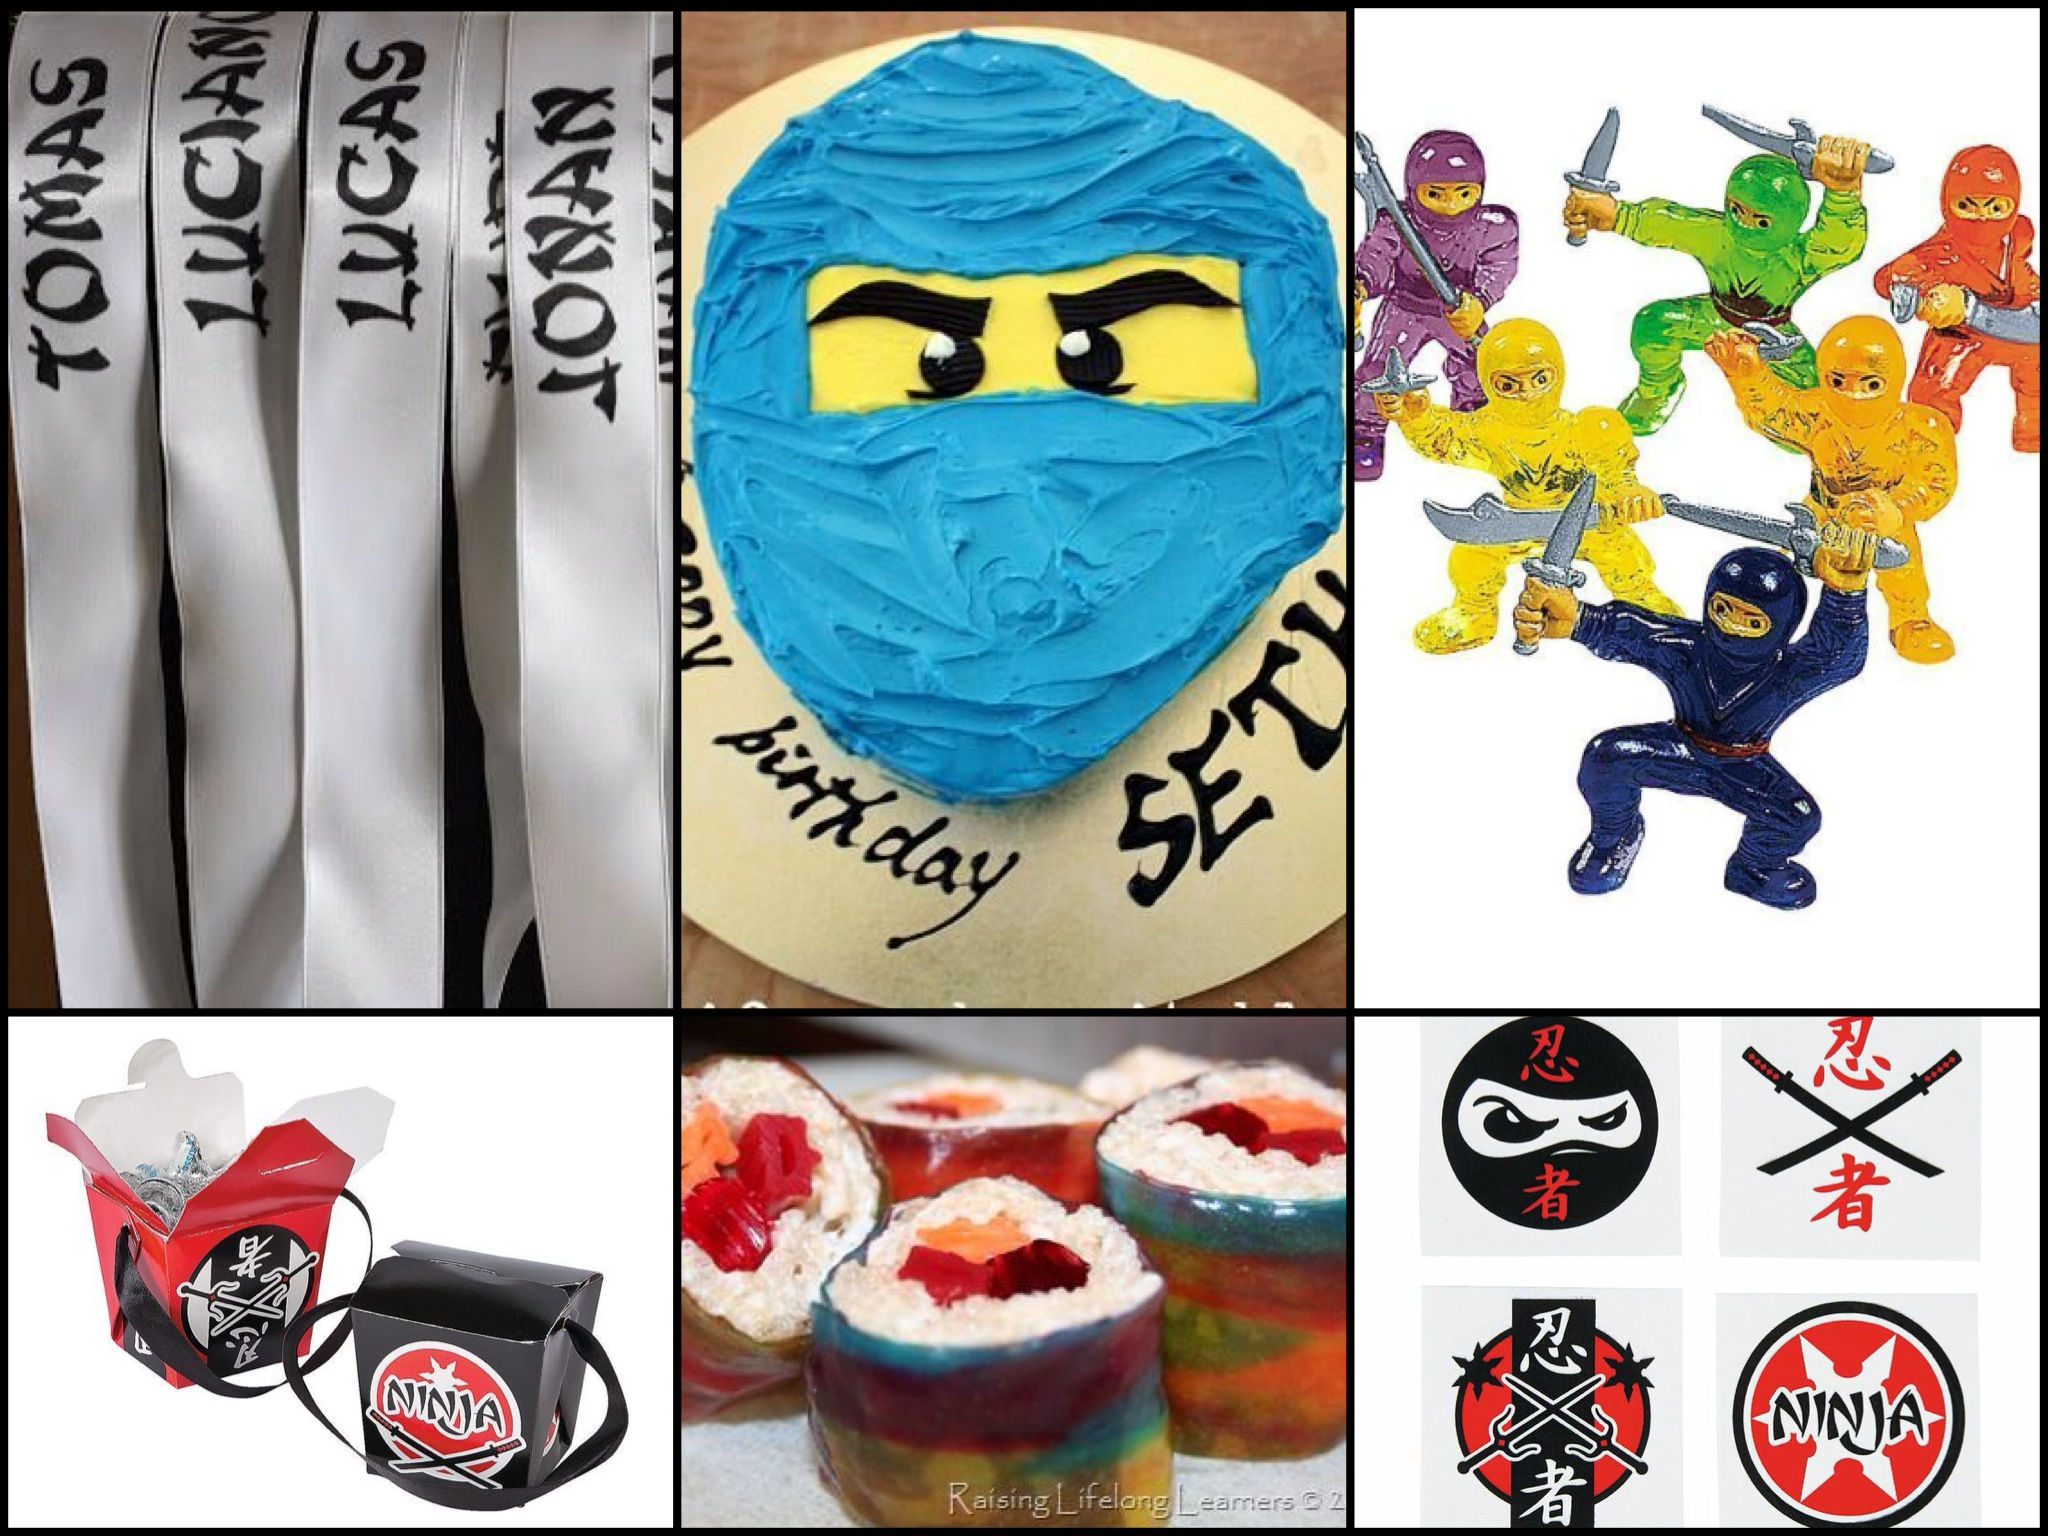 Gmail ninja theme - What Kid Doesn T Dream Of Being A Ninja Warrior Whether Your Birthday Kid Enjoys The Lego Ninjago Series Or Just Likes Martial Arts And Ninjas